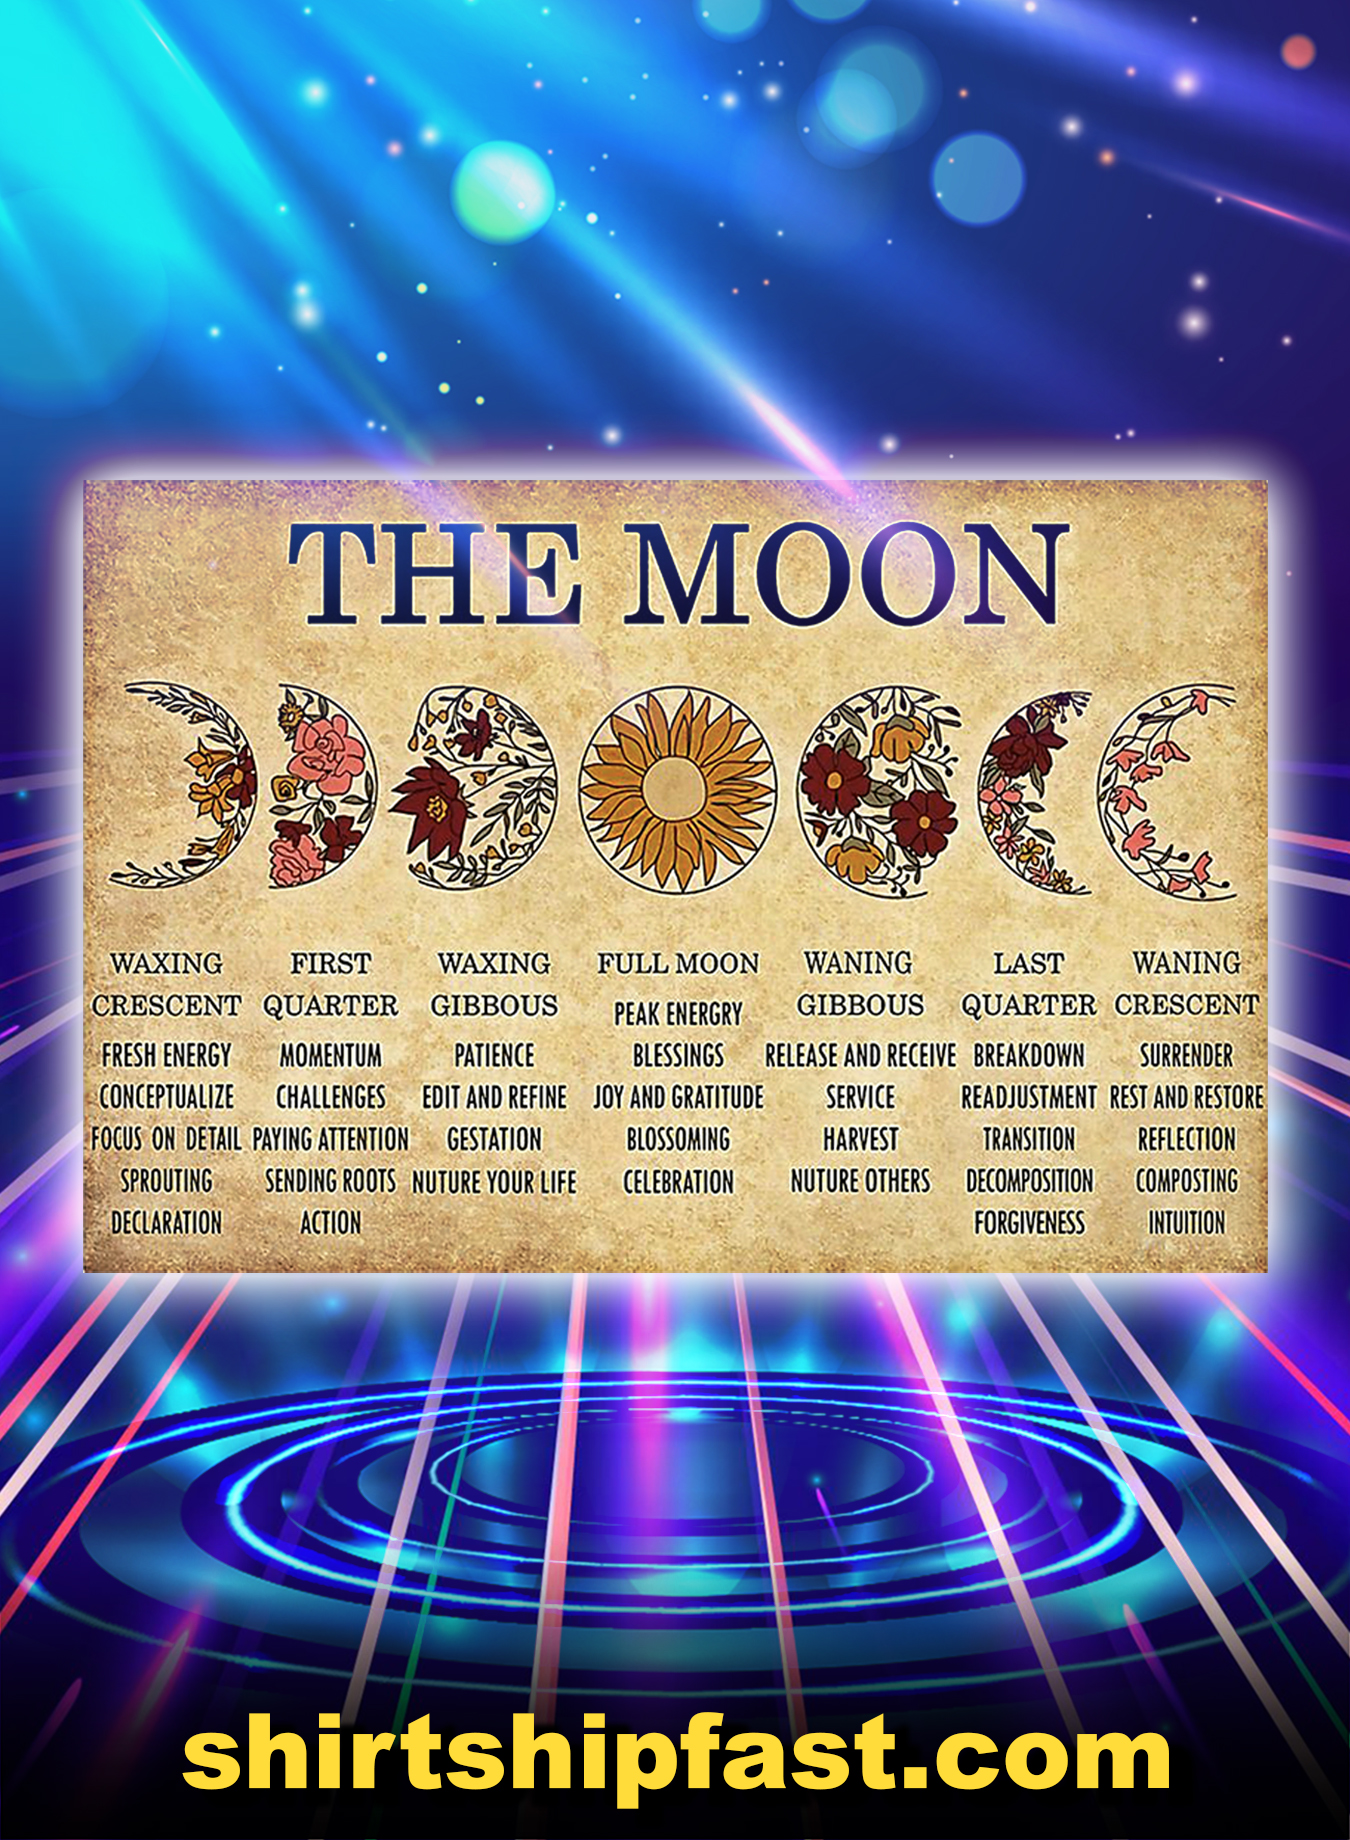 The moon waxing crescent first quarter poster - A3